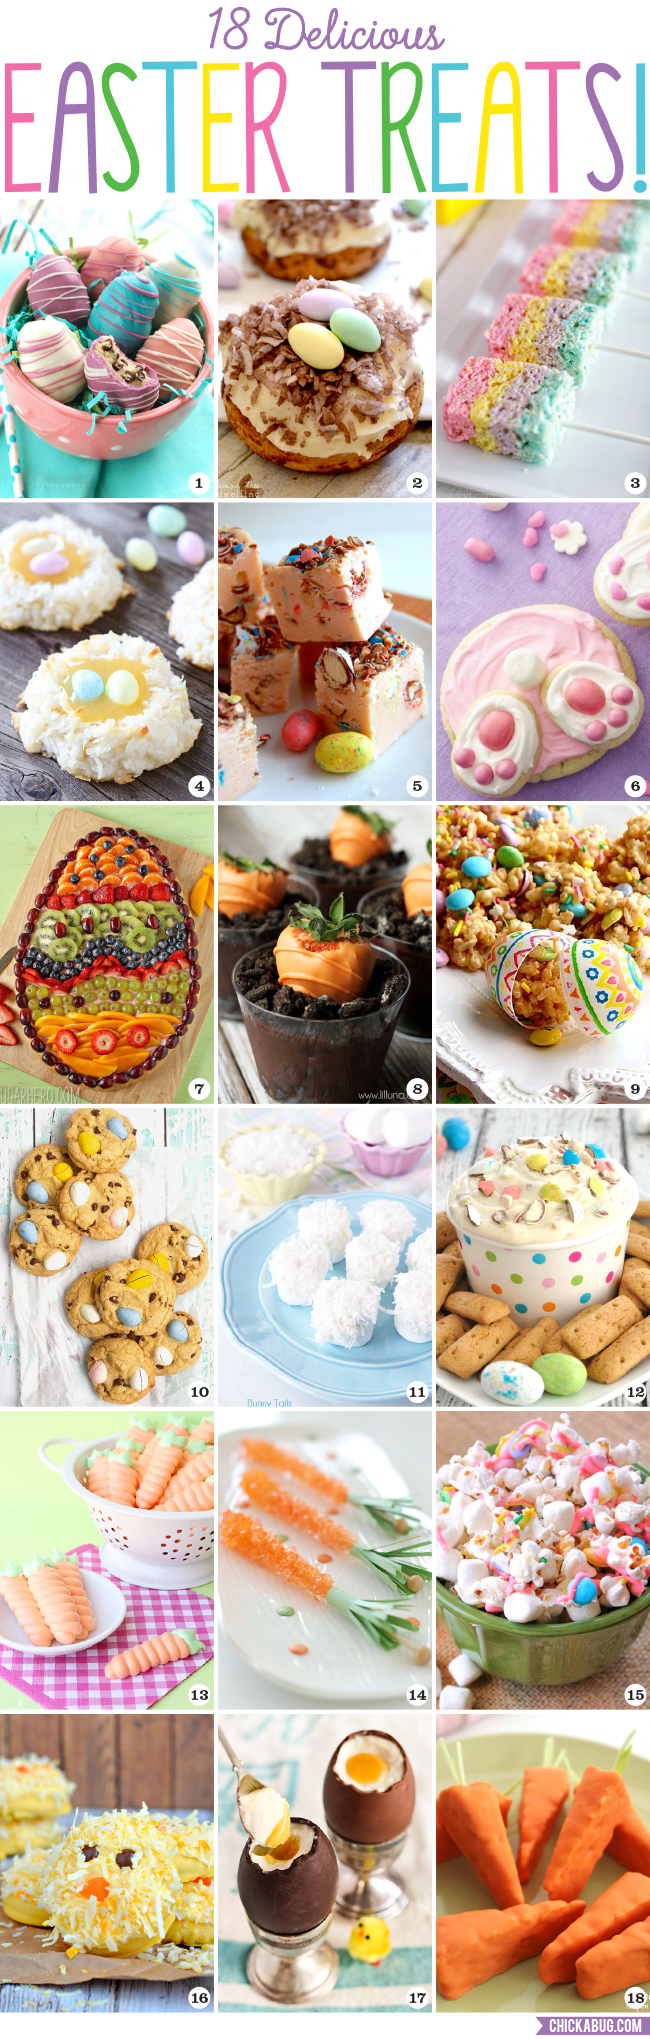 18 delicious Easter treats!